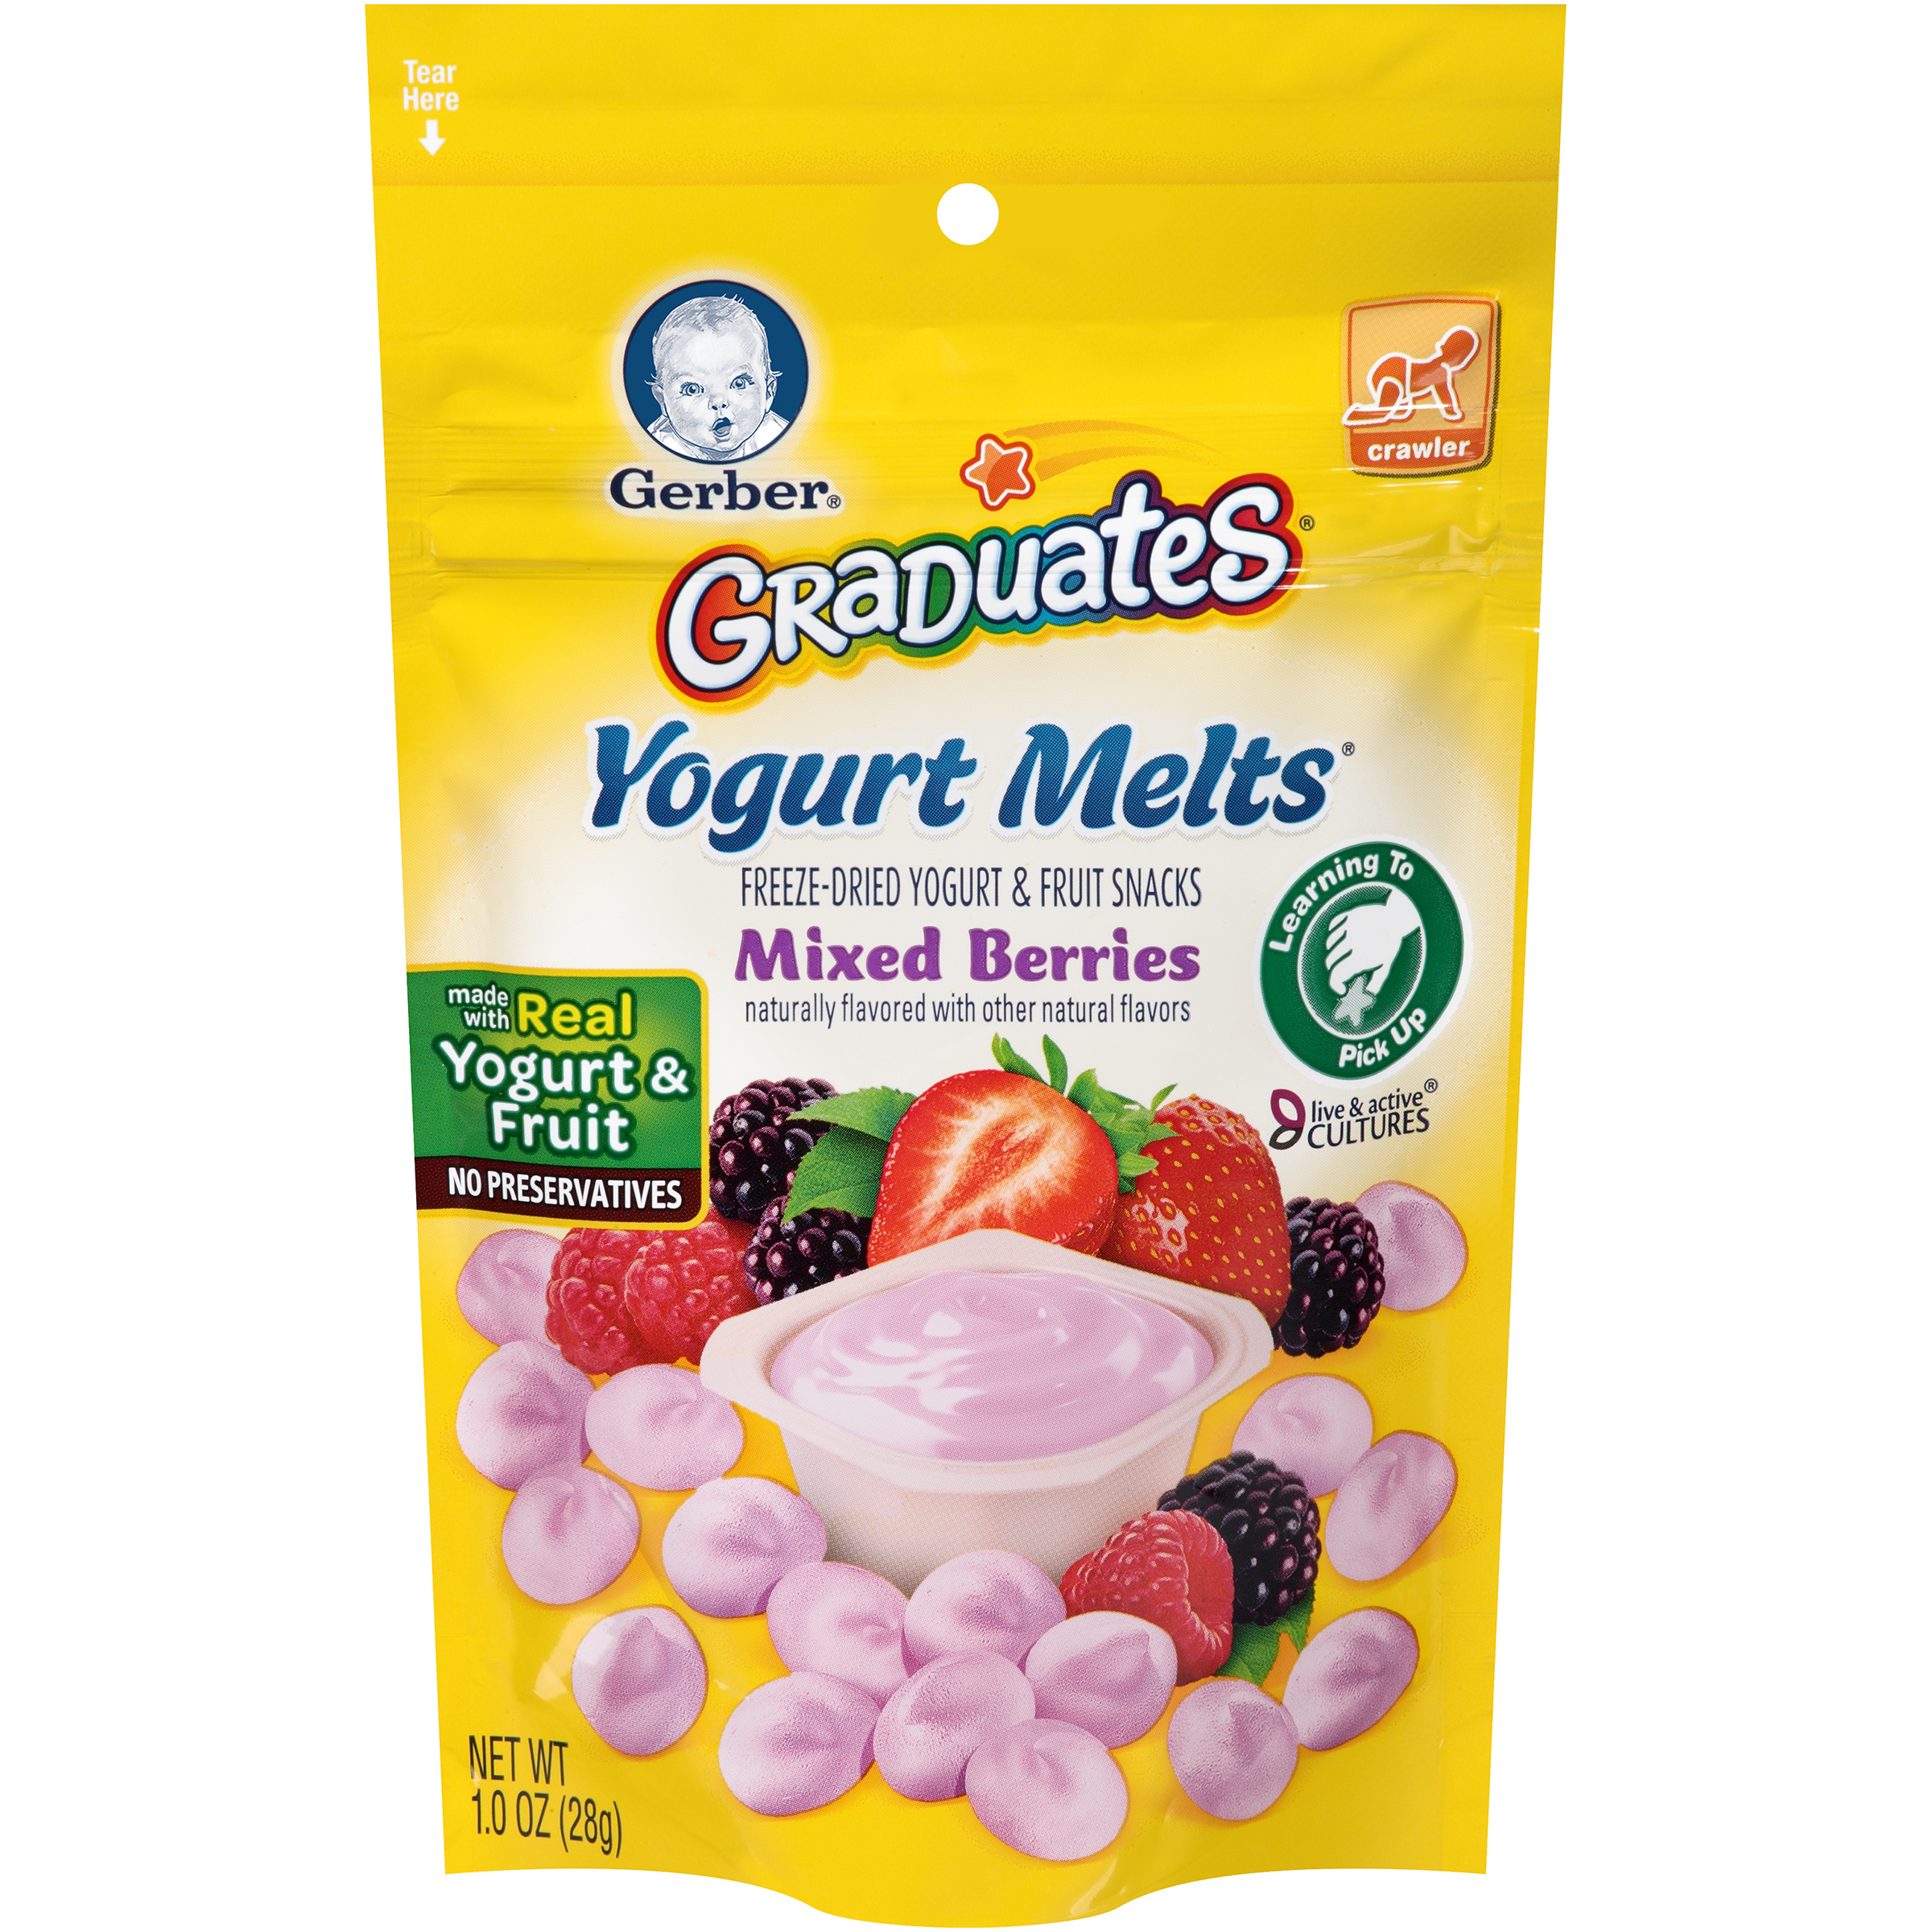 Gerber Graduates Yogurt Melts Freeze-Dried Yogurt & Fruit Snacks, Mixed Berries, Naturally Flavored with Other Natural Flavors, 1 Ounce, 1 Count